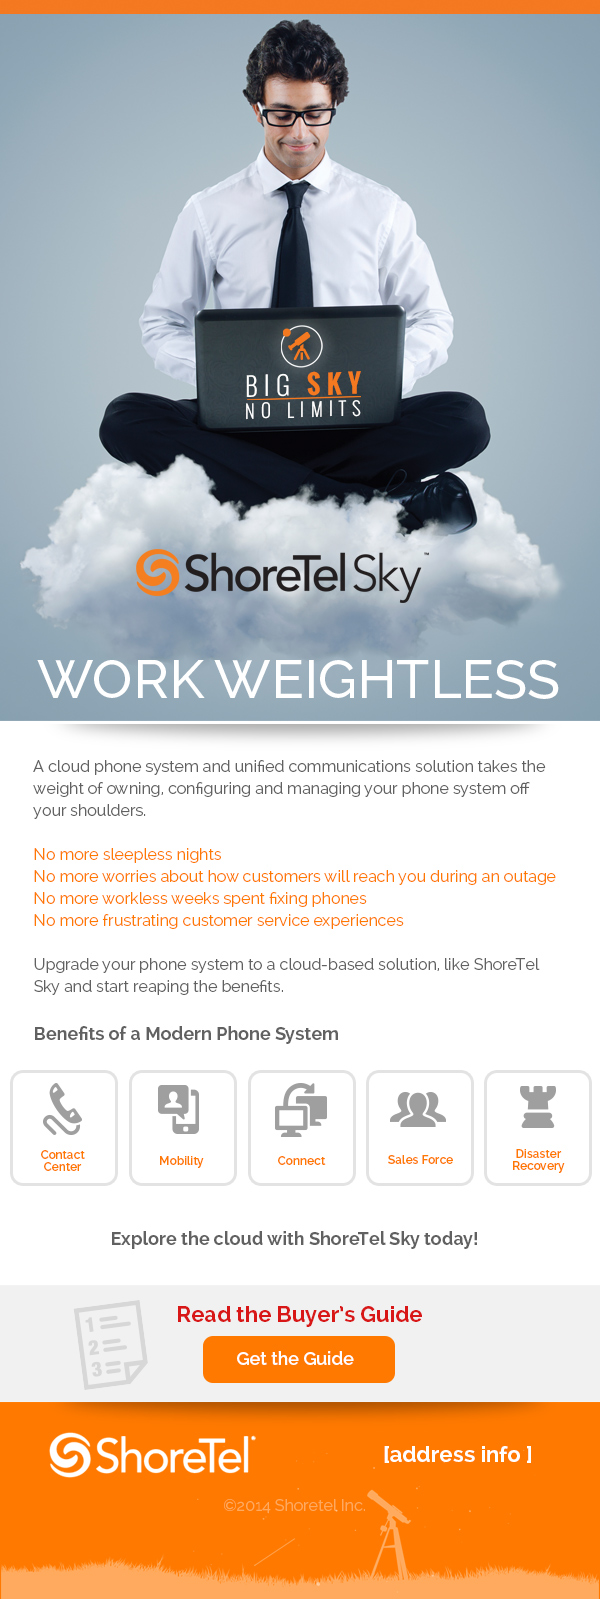 ShoreTel Sky email marketing